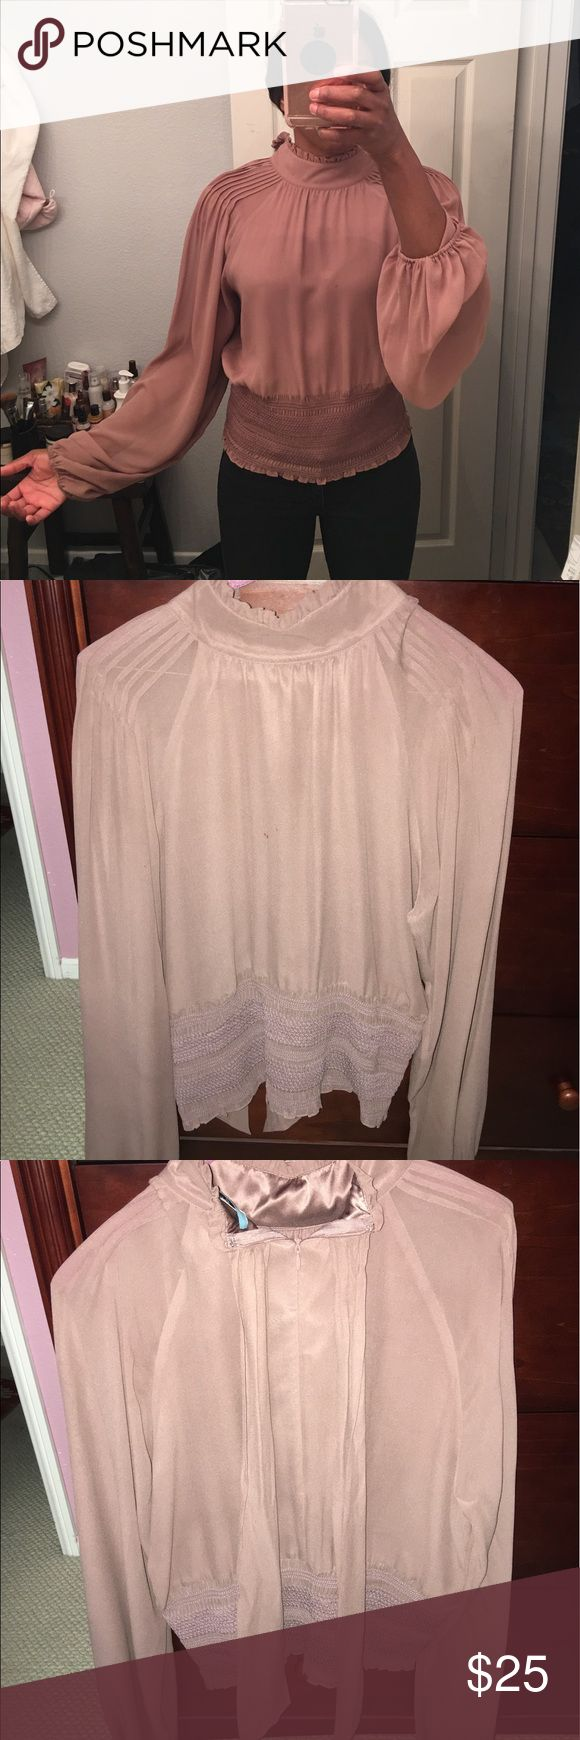 Guess Marciano top large Mauve color 100% silk, 2 small perfume marks on front, Not noticeable Guess by Marciano Tops Blouses